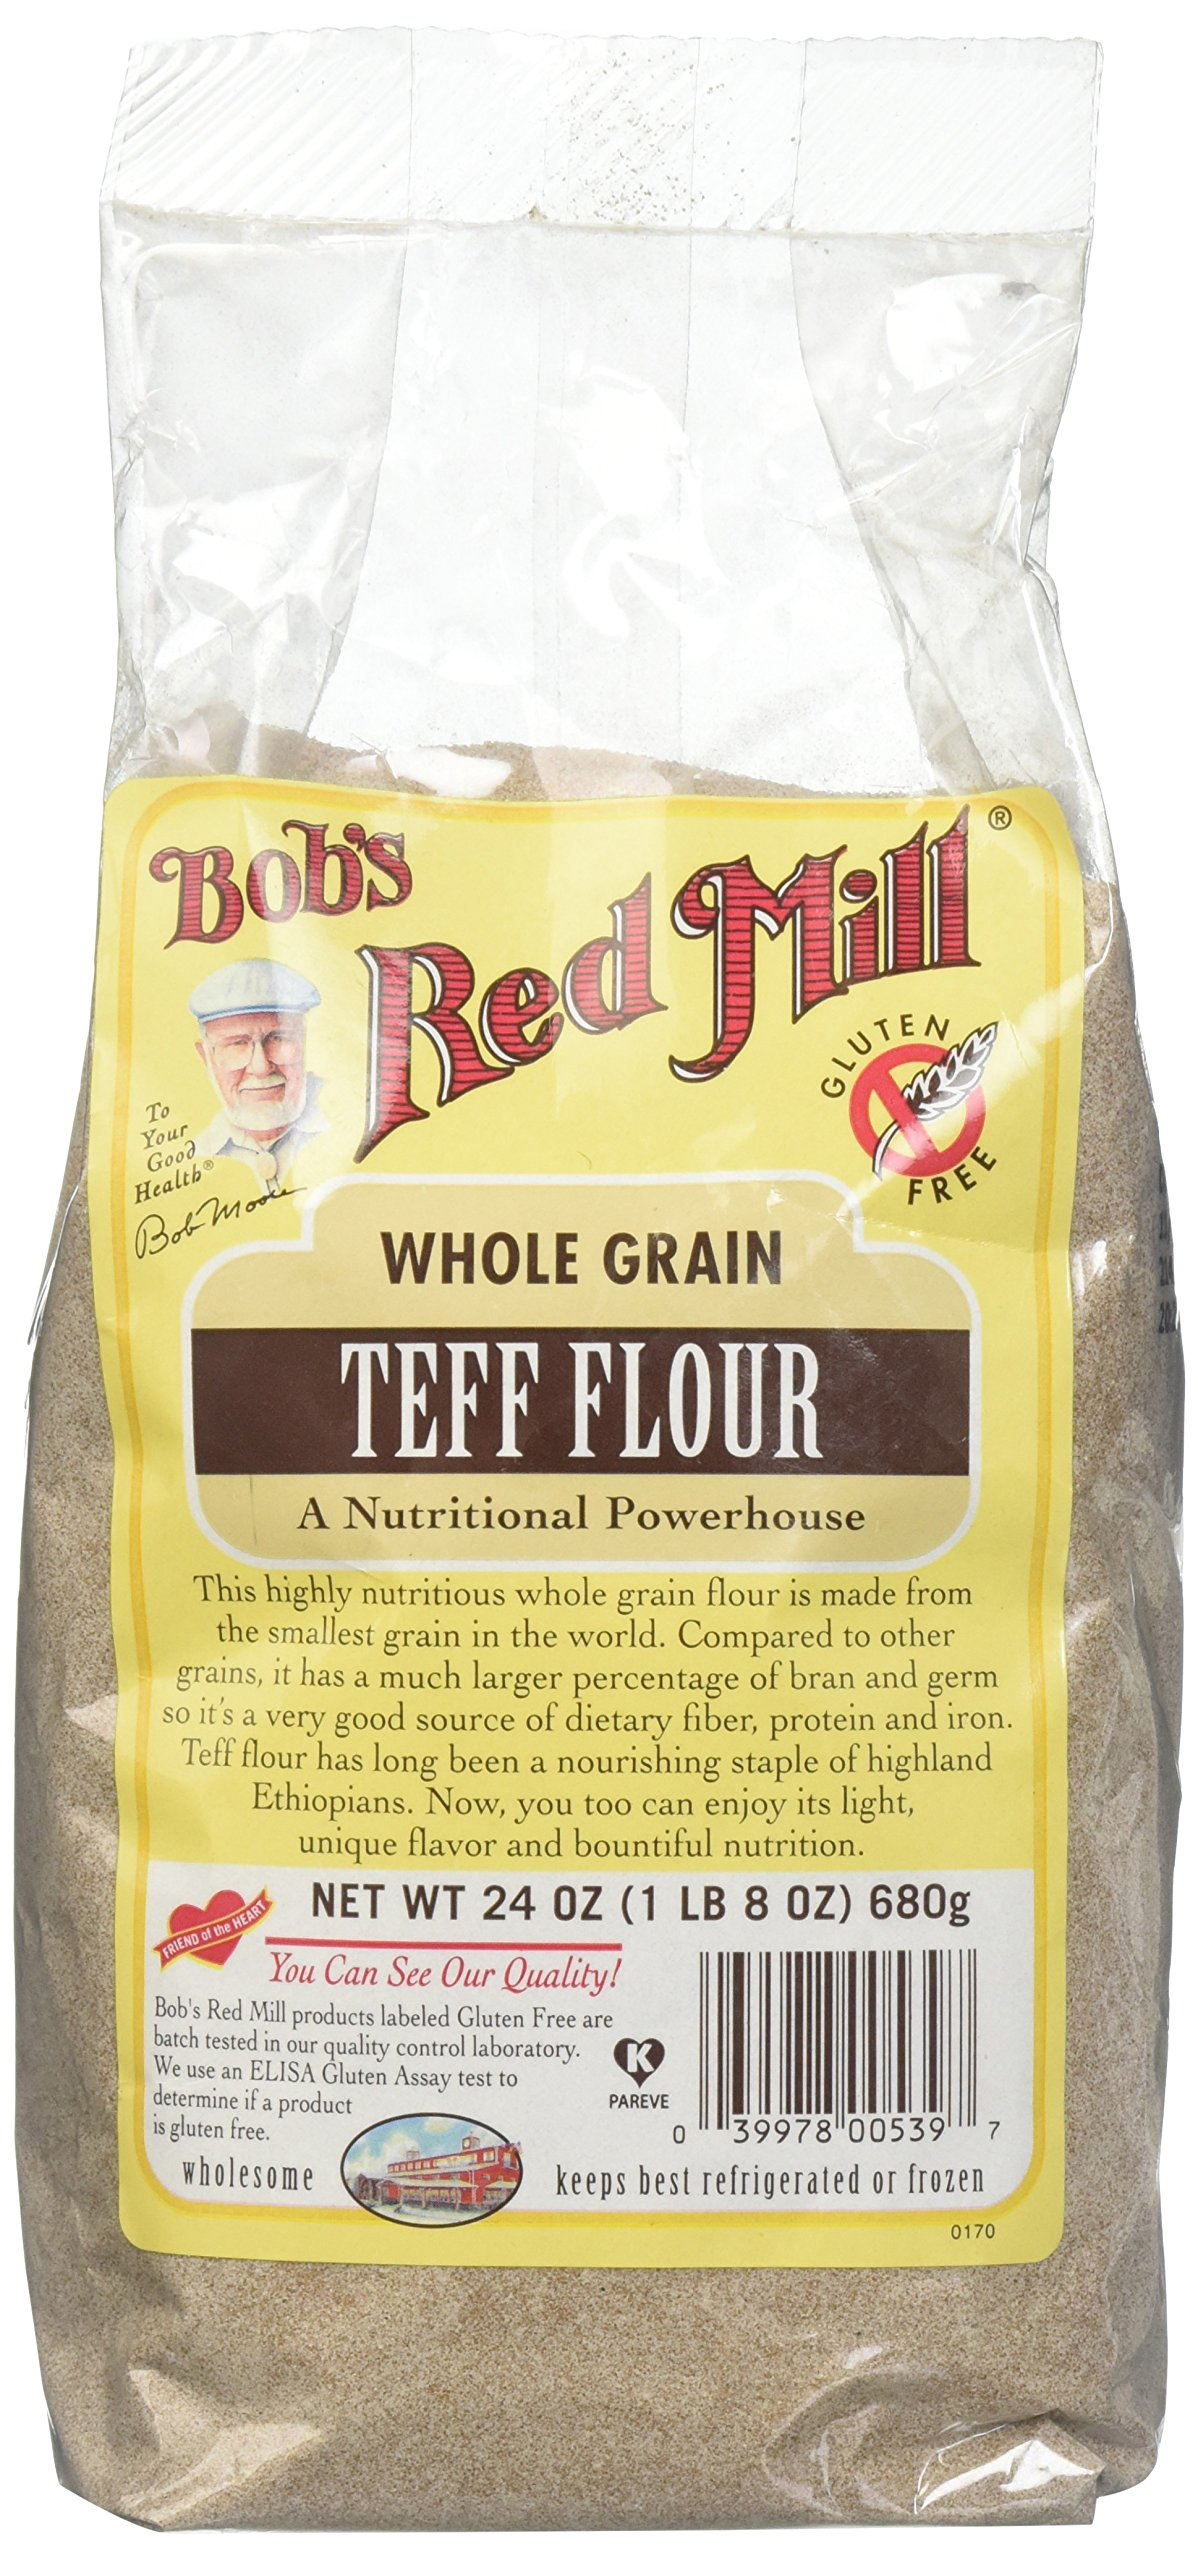 Amazon.com: Bob's Red Mill Whole Grain Teff - 24 oz